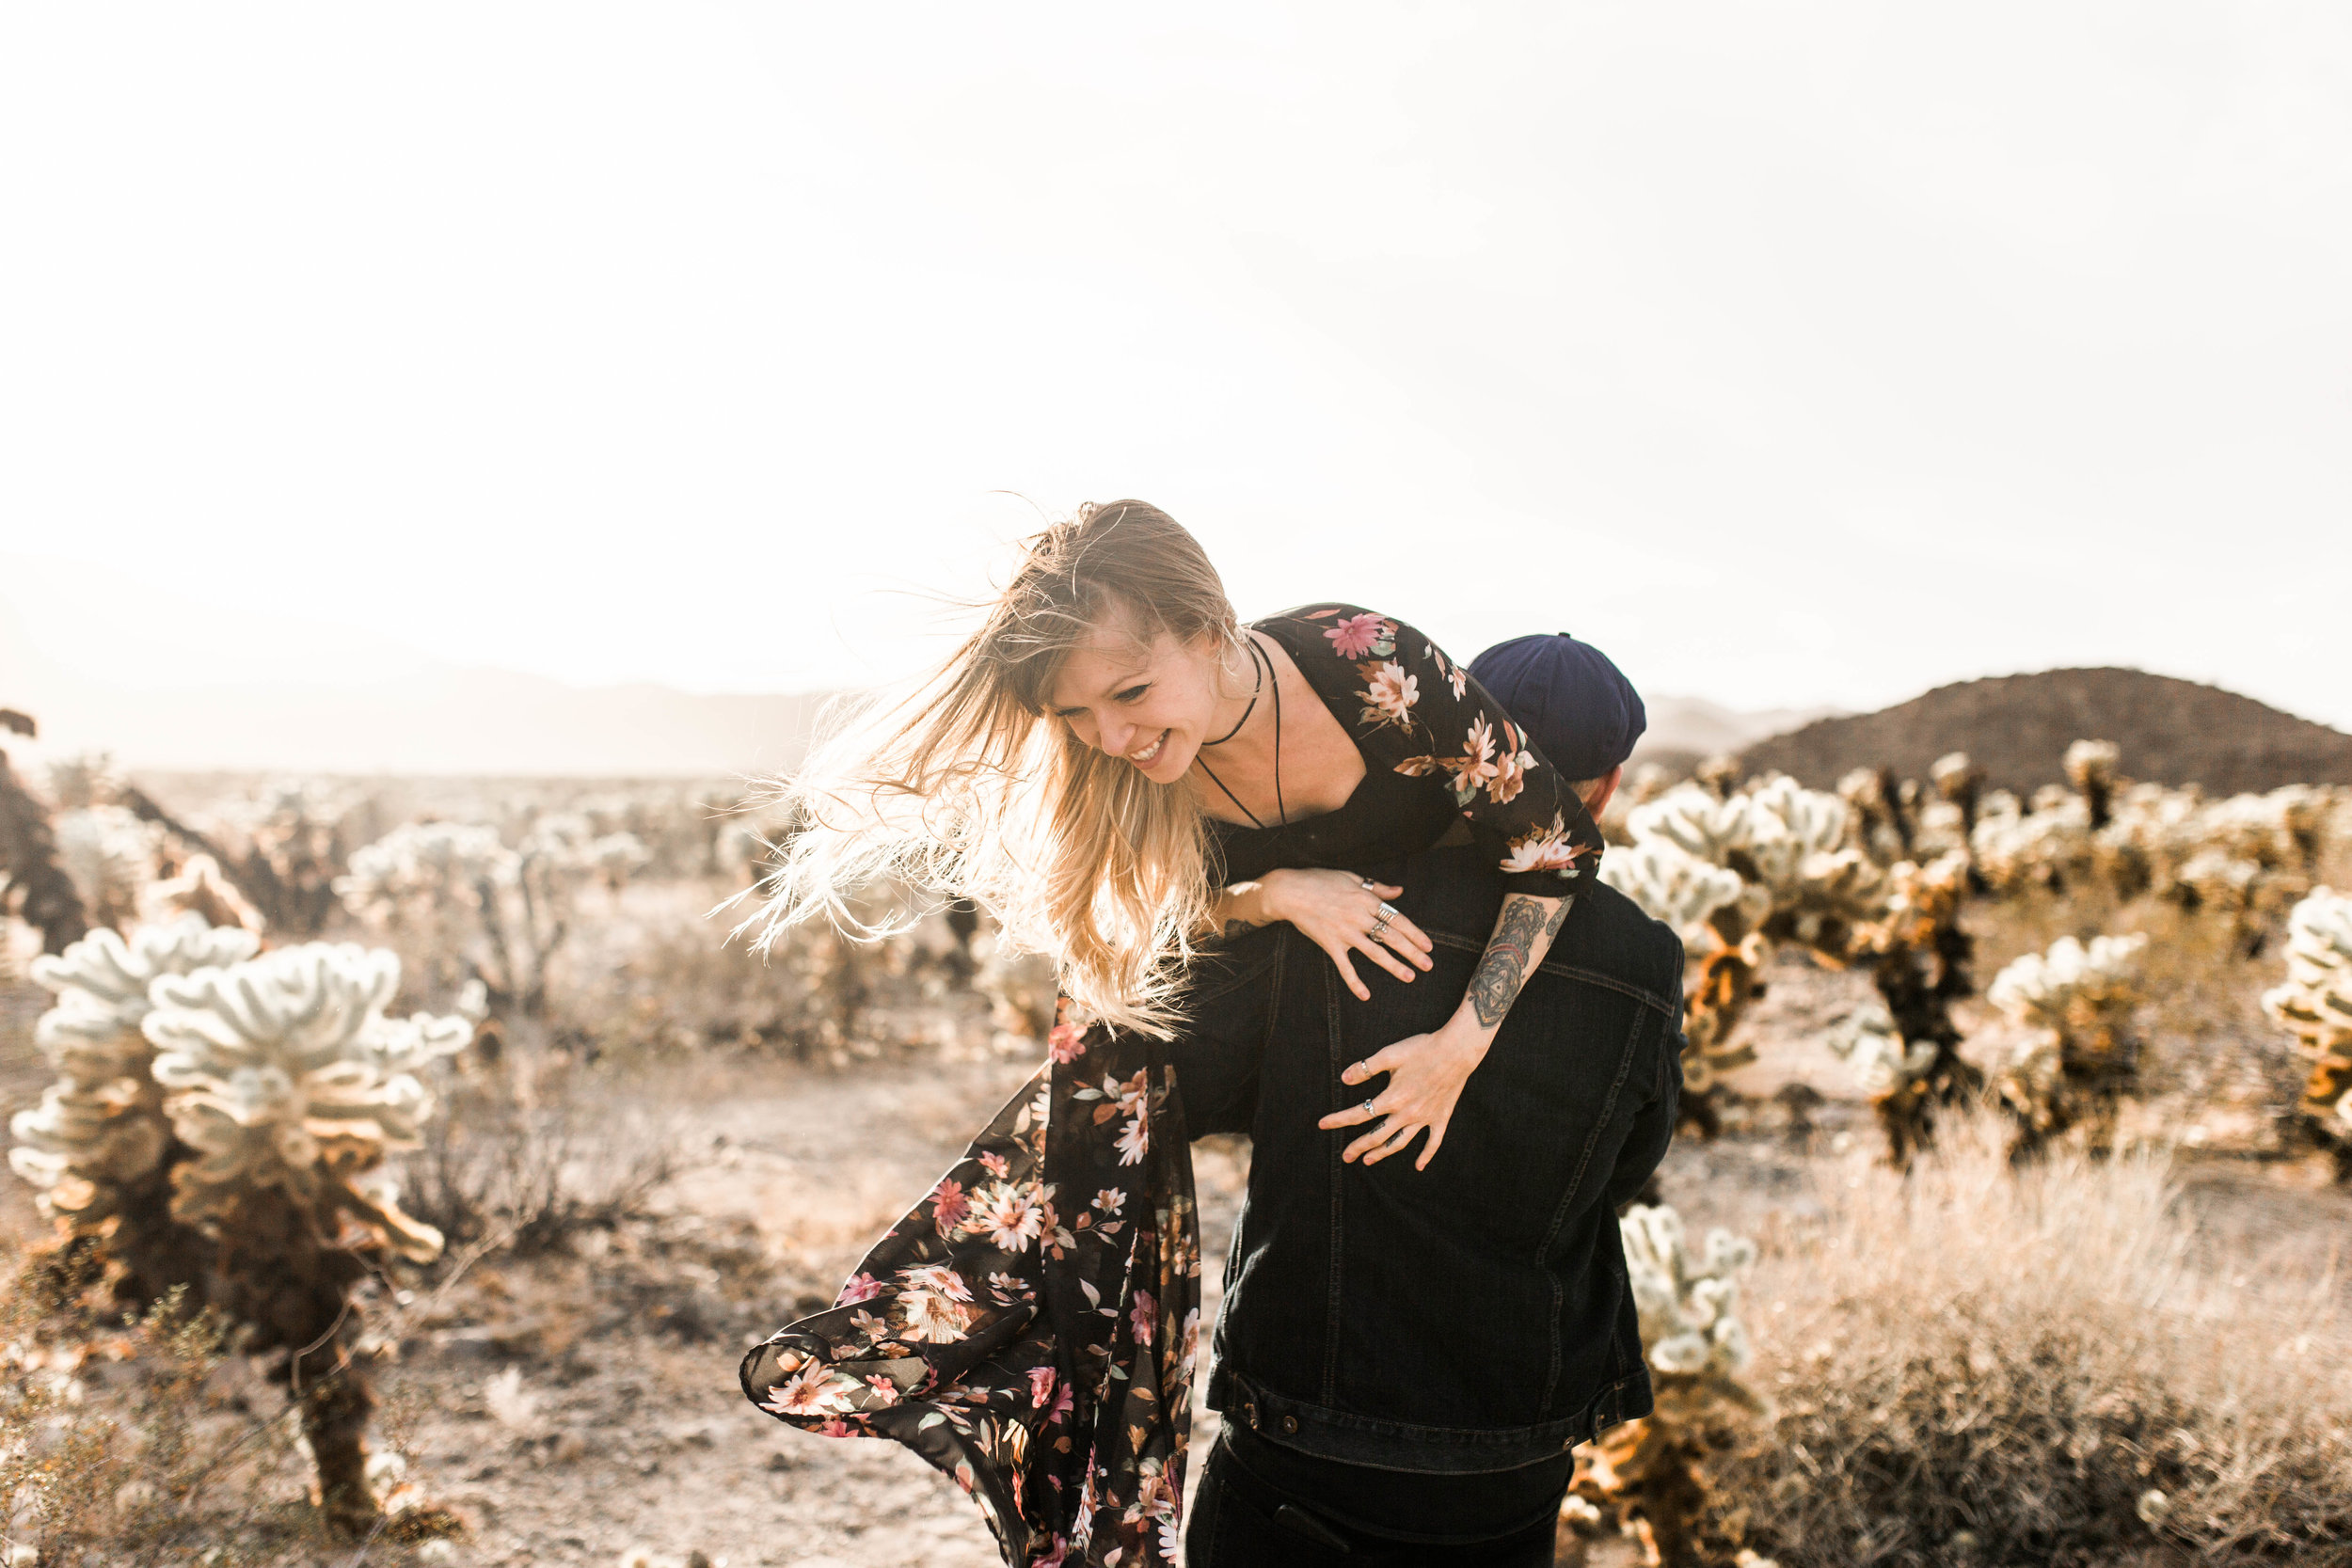 Nicole-Daacke-Photography-Adventure-Engagement-couples-Session-joshua-tree-Golden-desert-love-california-photographer-14.jpg